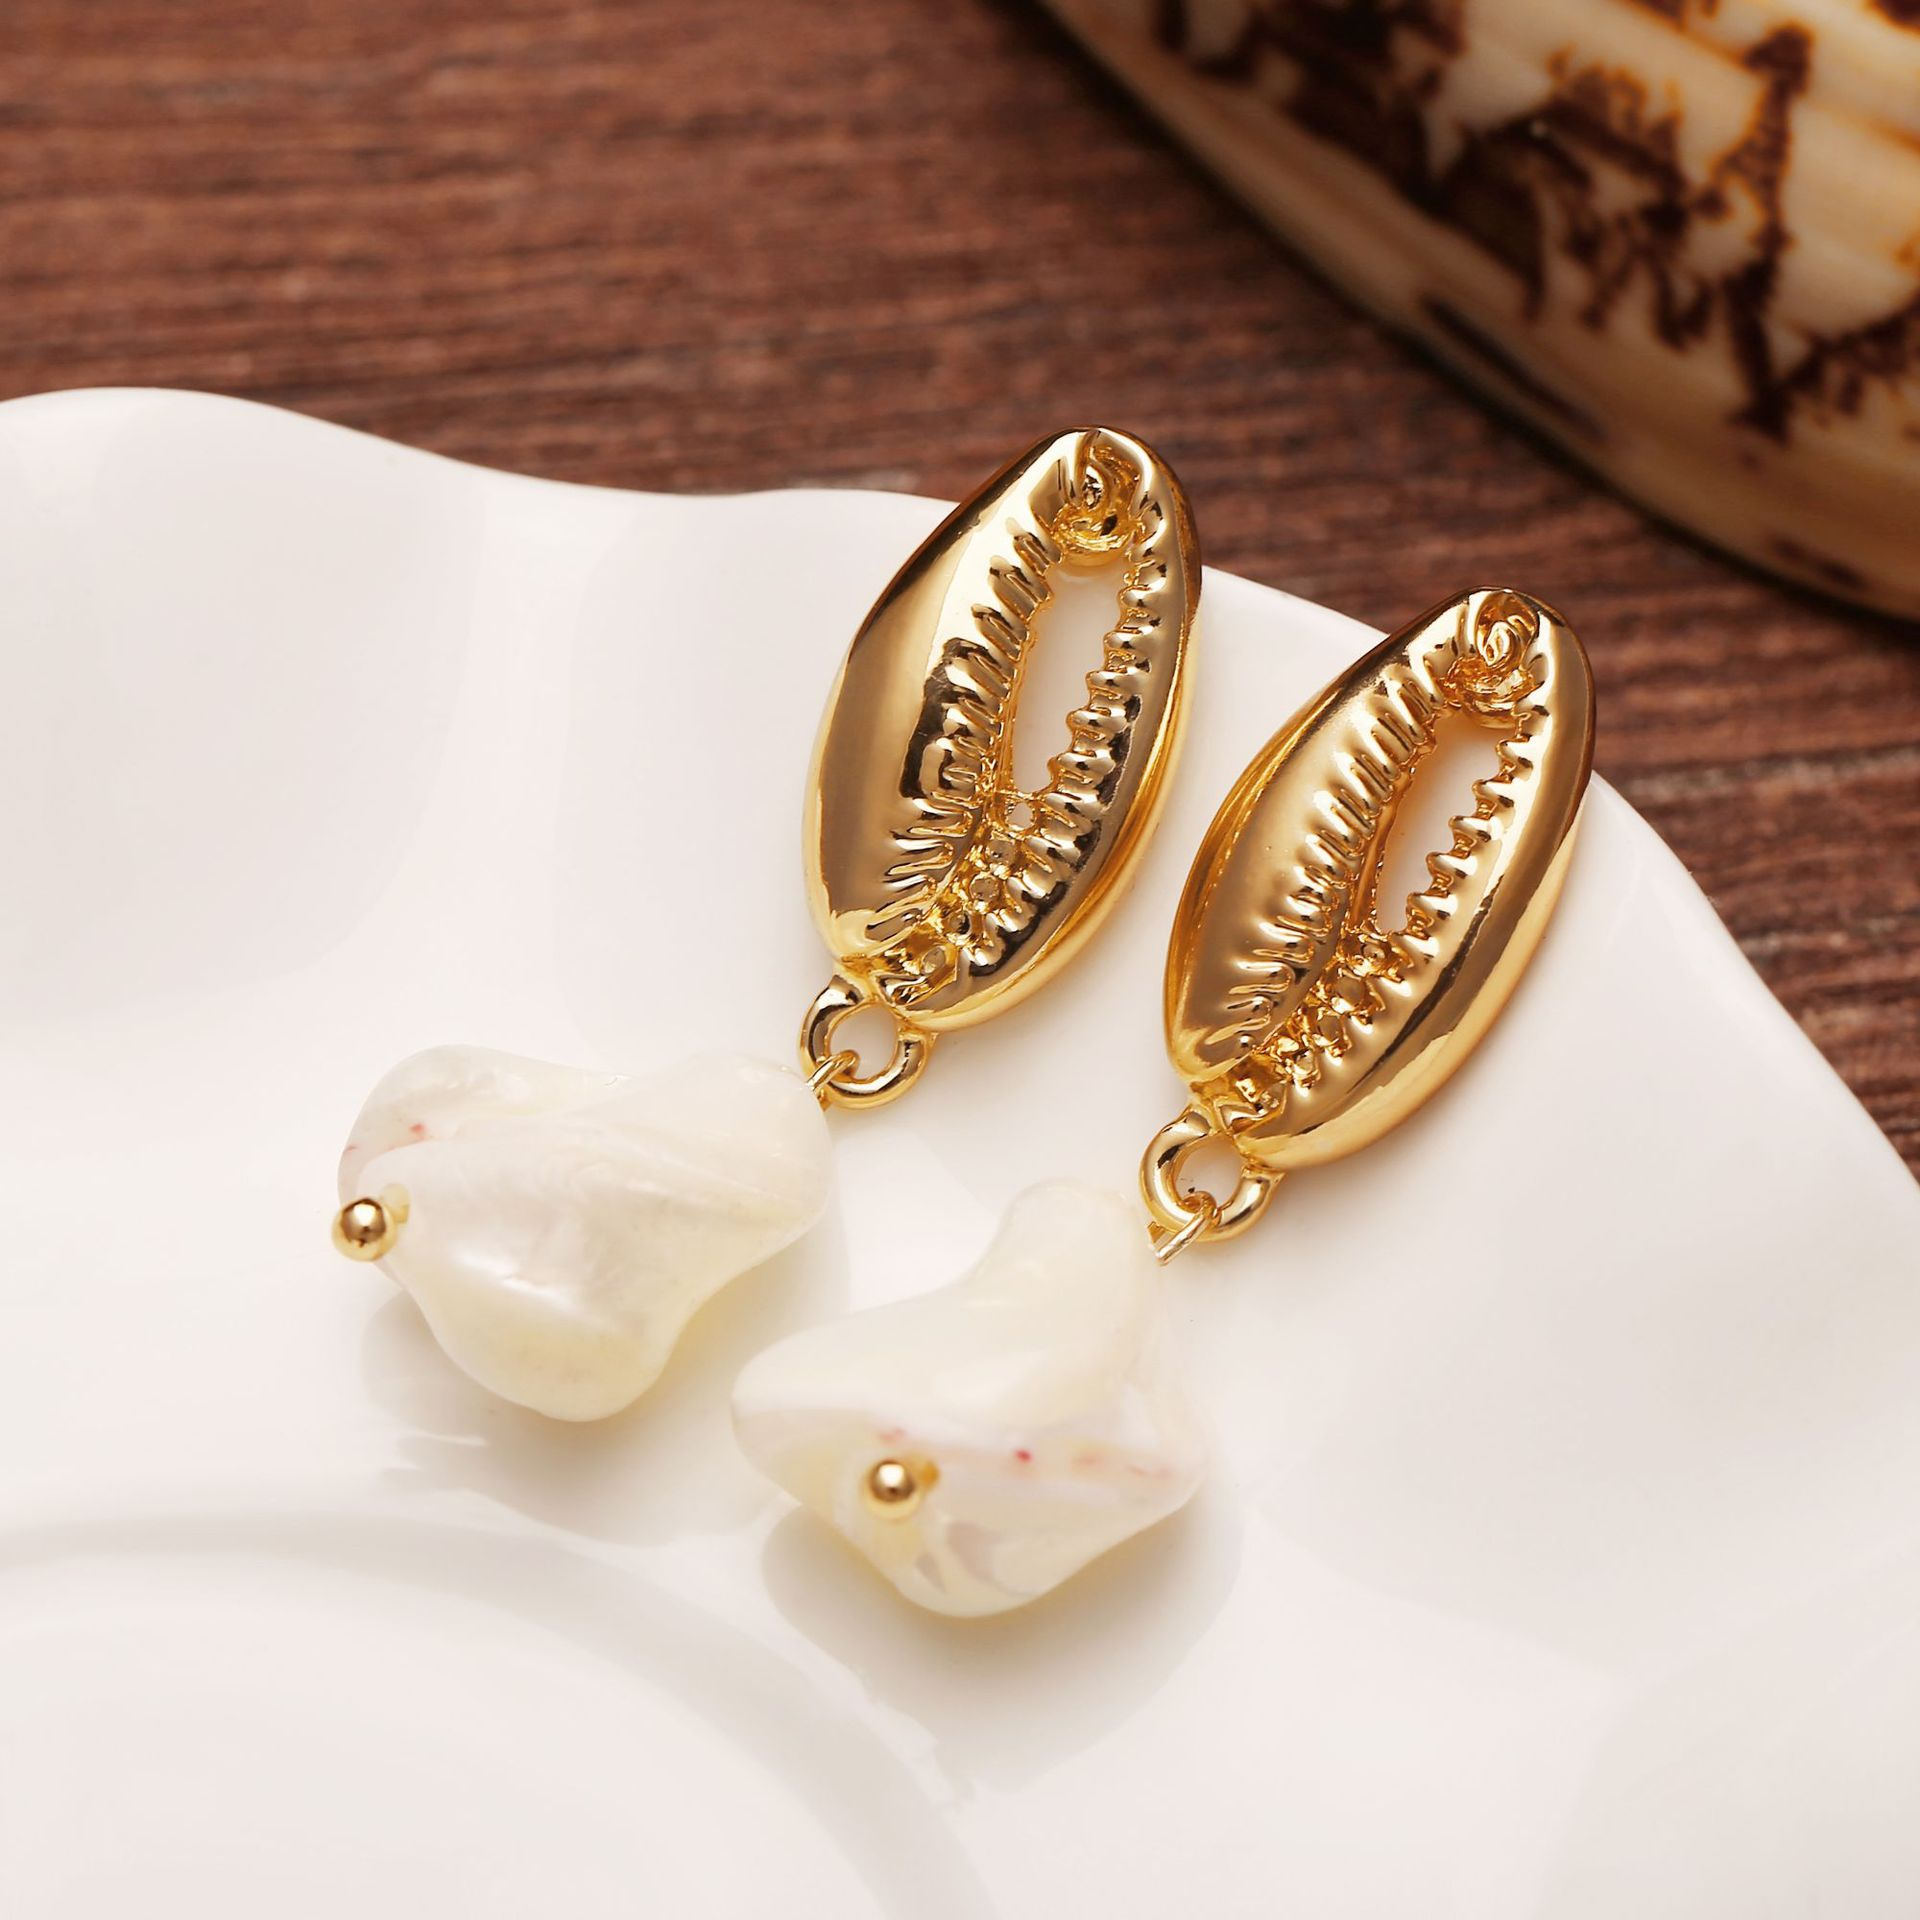 Fashion Women Alloy Pearl Trendy Jewellery Paua Shell <strong>Earrings</strong> <strong>Gold</strong> Hammered Metal <strong>Earrings</strong>